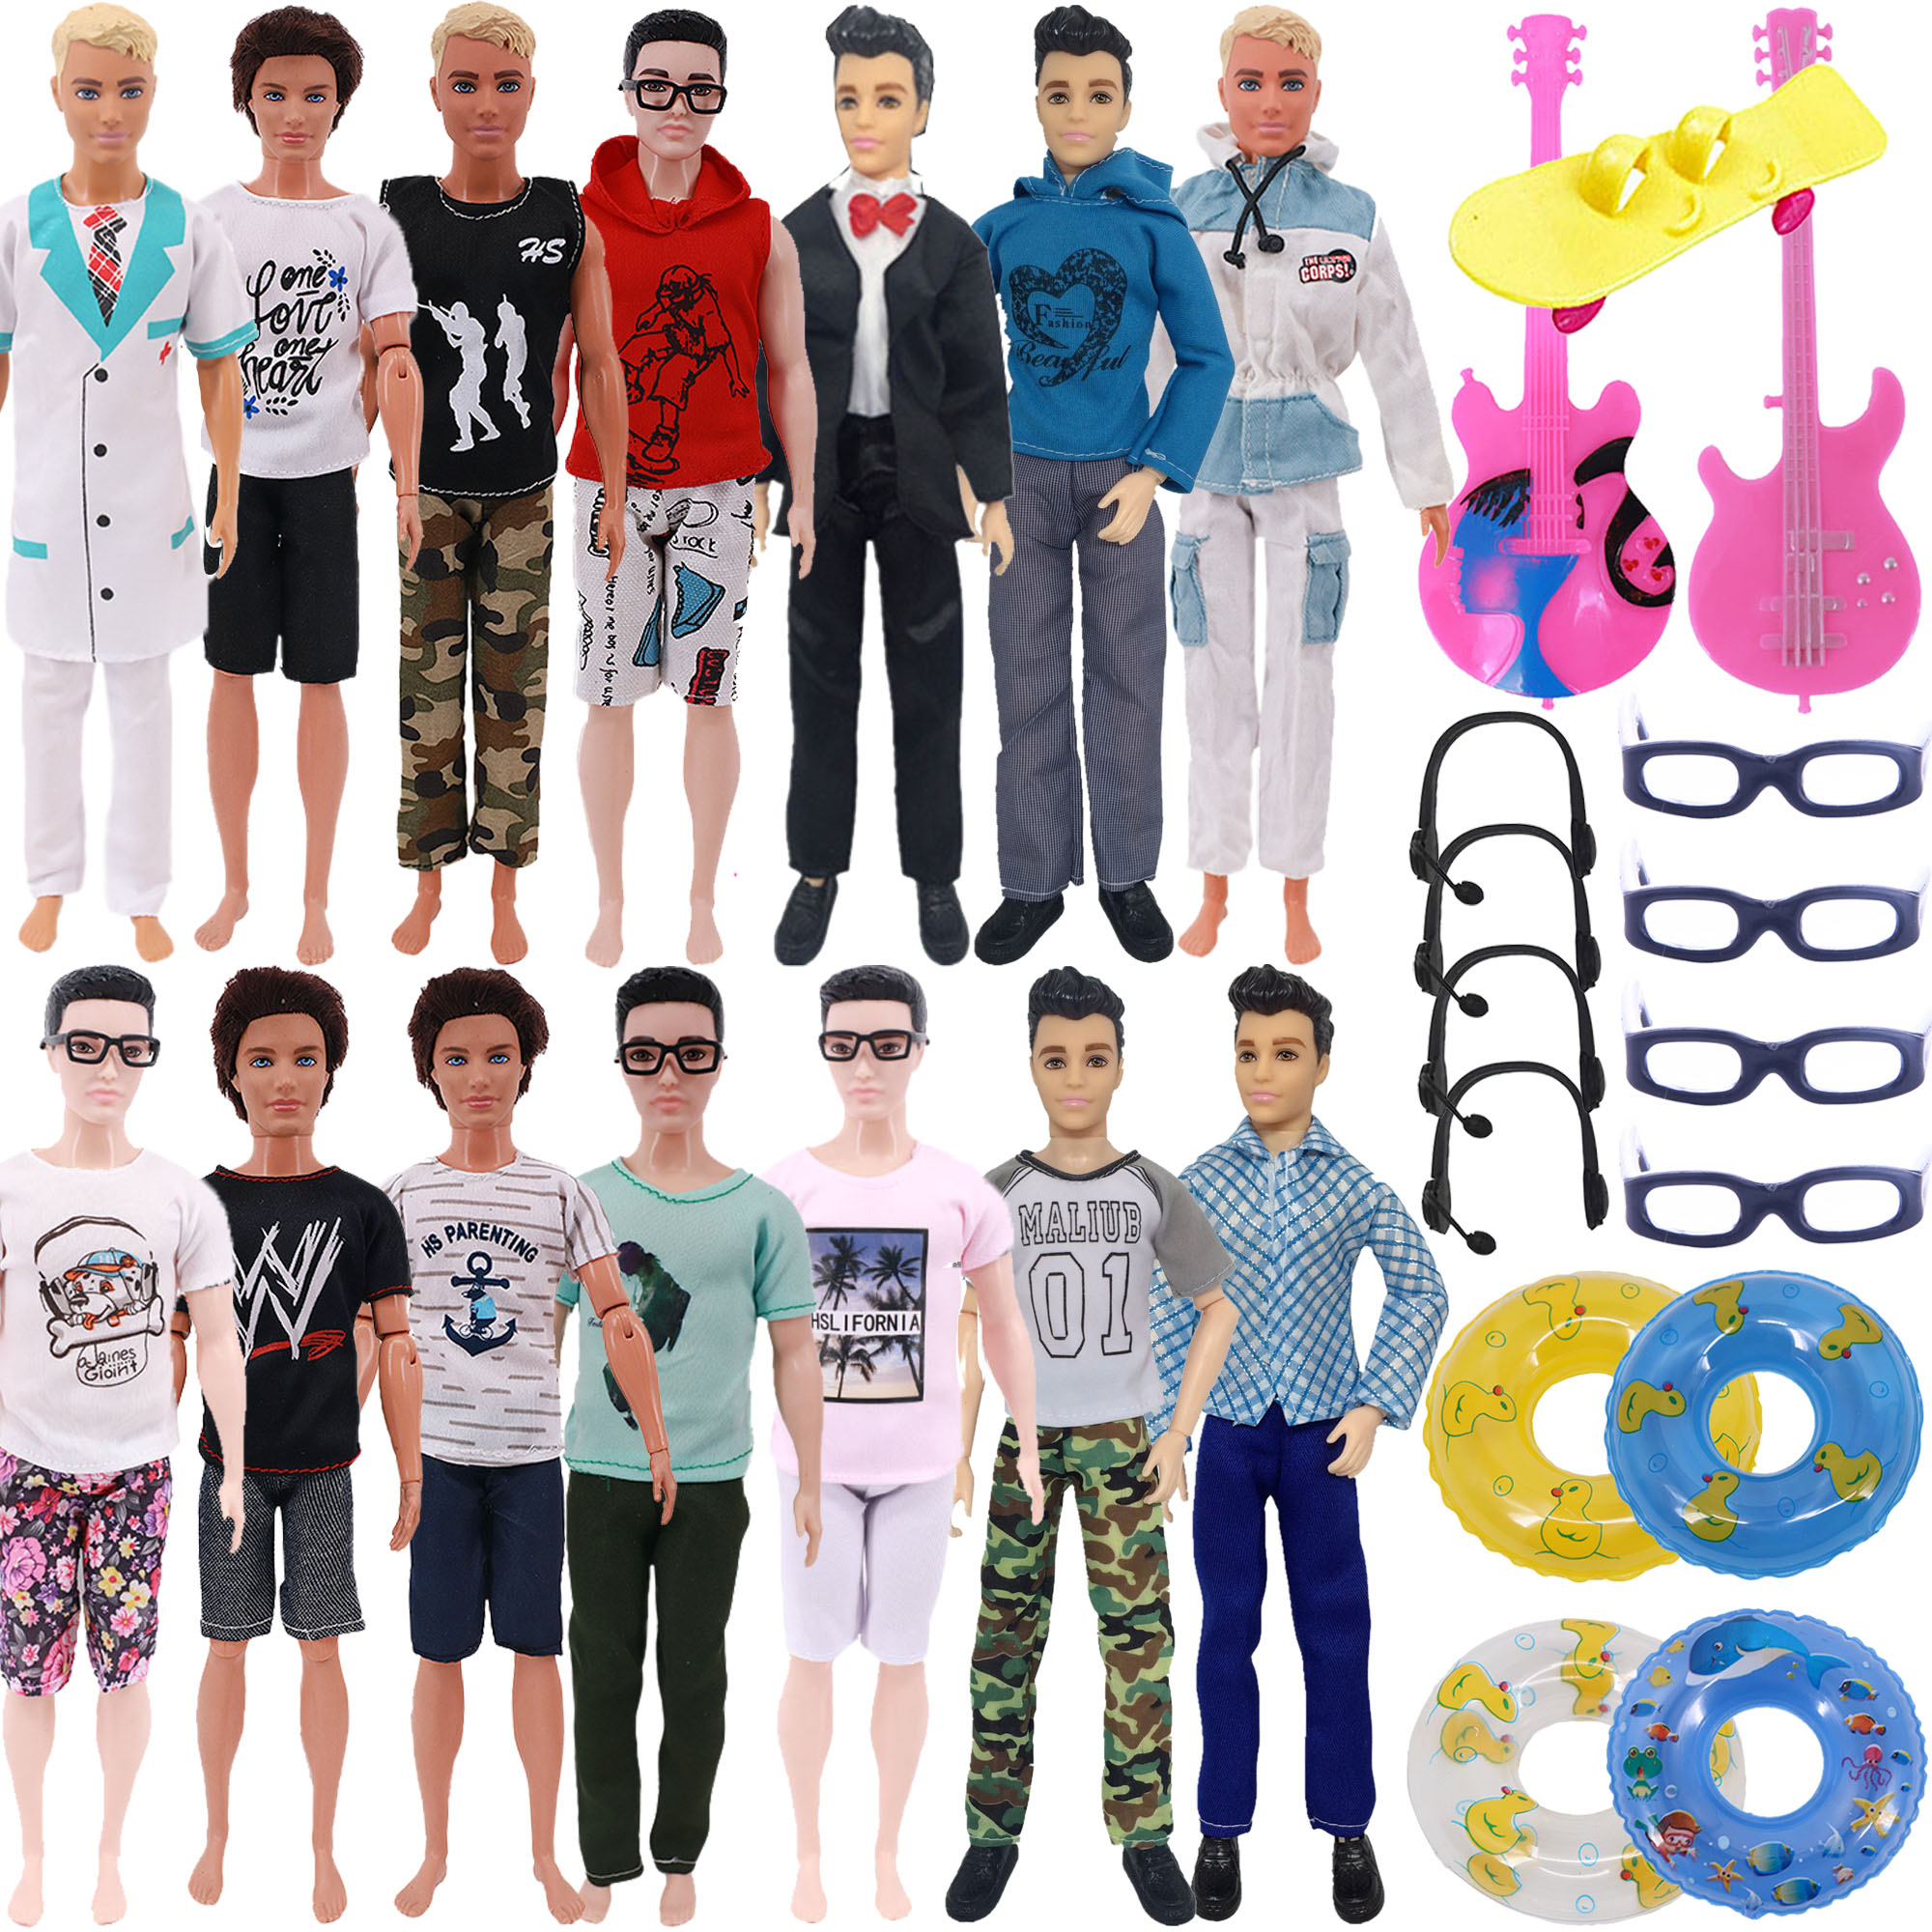 13Pcs/Set Ken Doll Clothes FreeShipping Glasses Shoes Hangers Guitar Skateboard Headsets Accessories For Barbies Girl`s Toy DIY